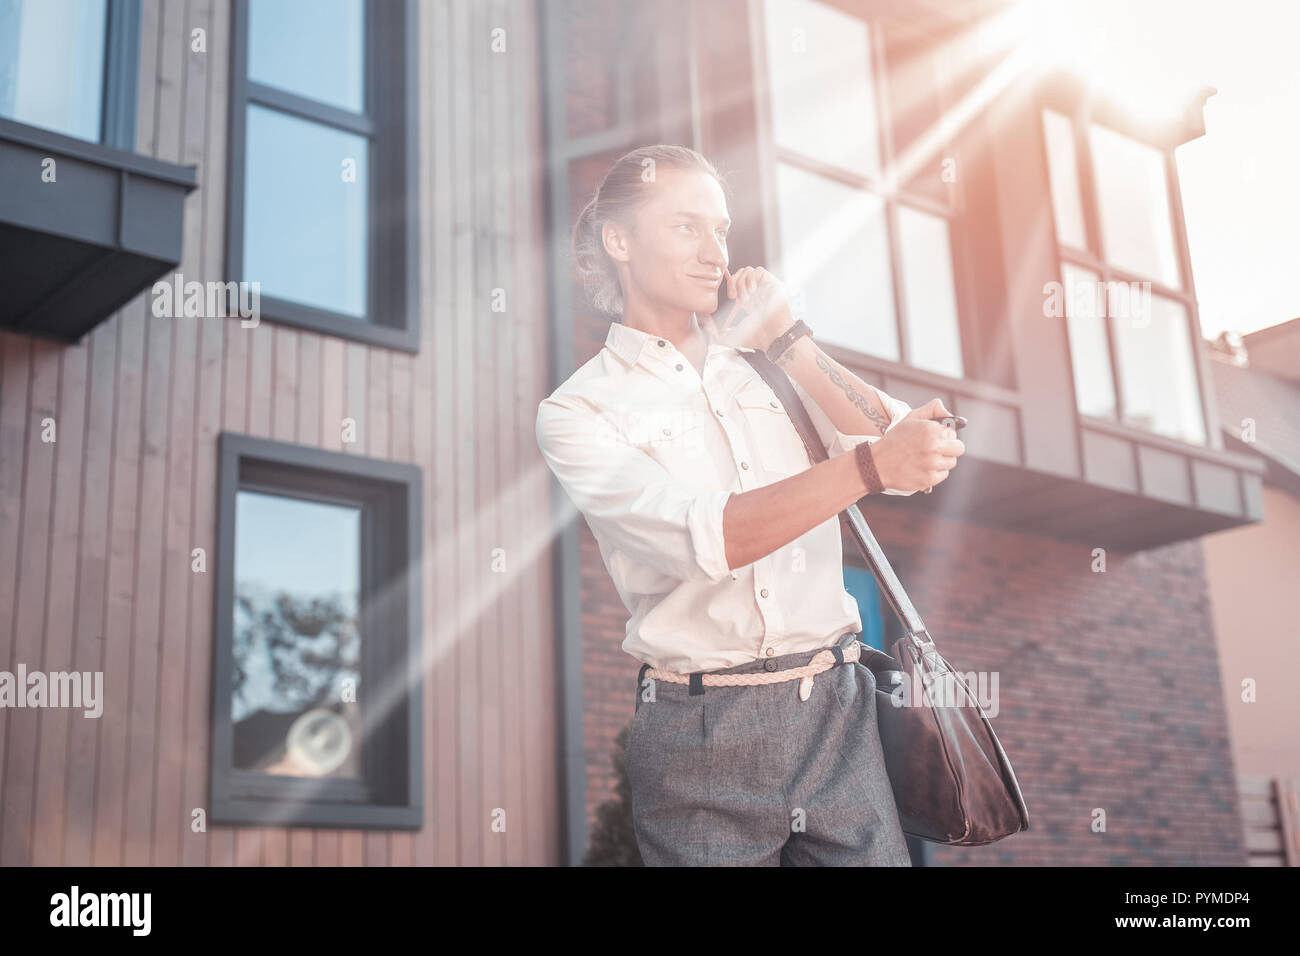 Good-looking man wearing nice hand watch opening car while going to office - Stock Image